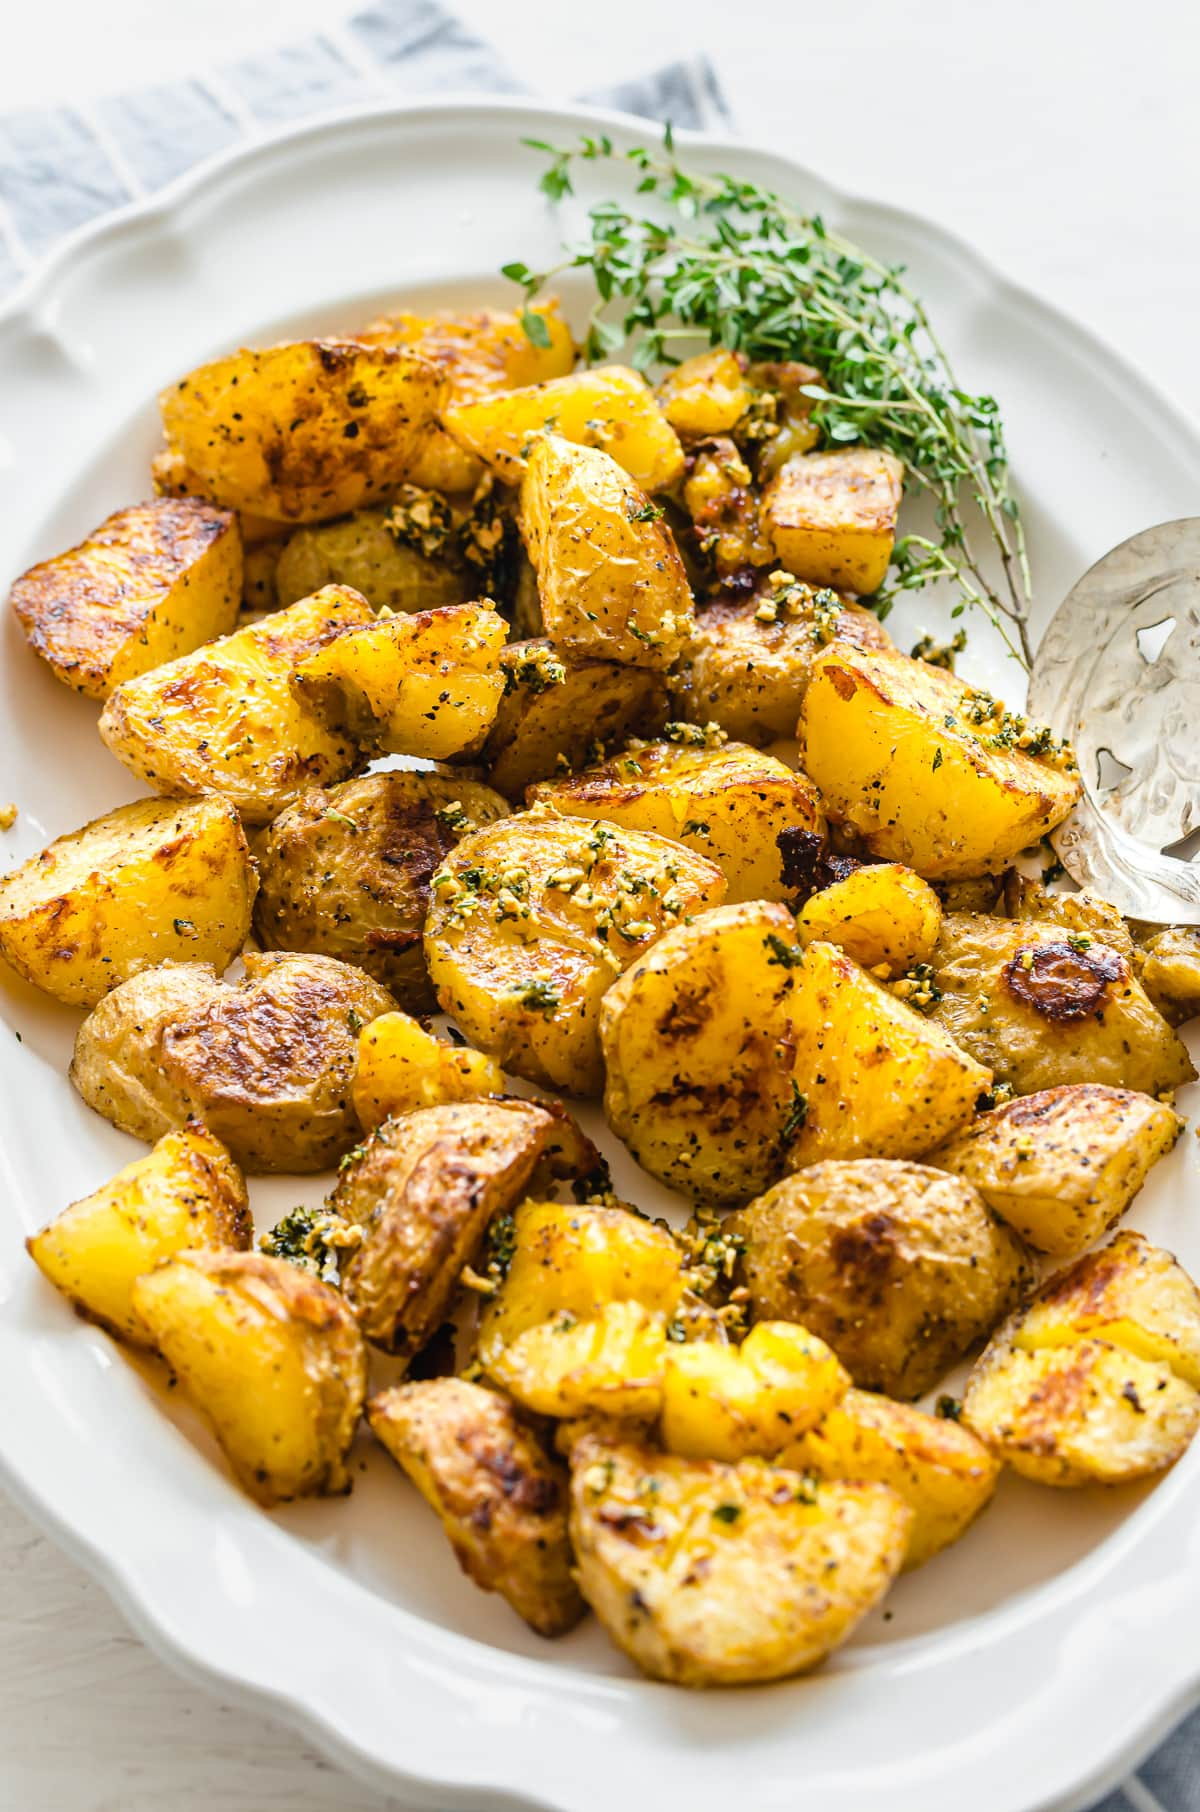 A close-up shot of roasted potatoes on a white serving platter.